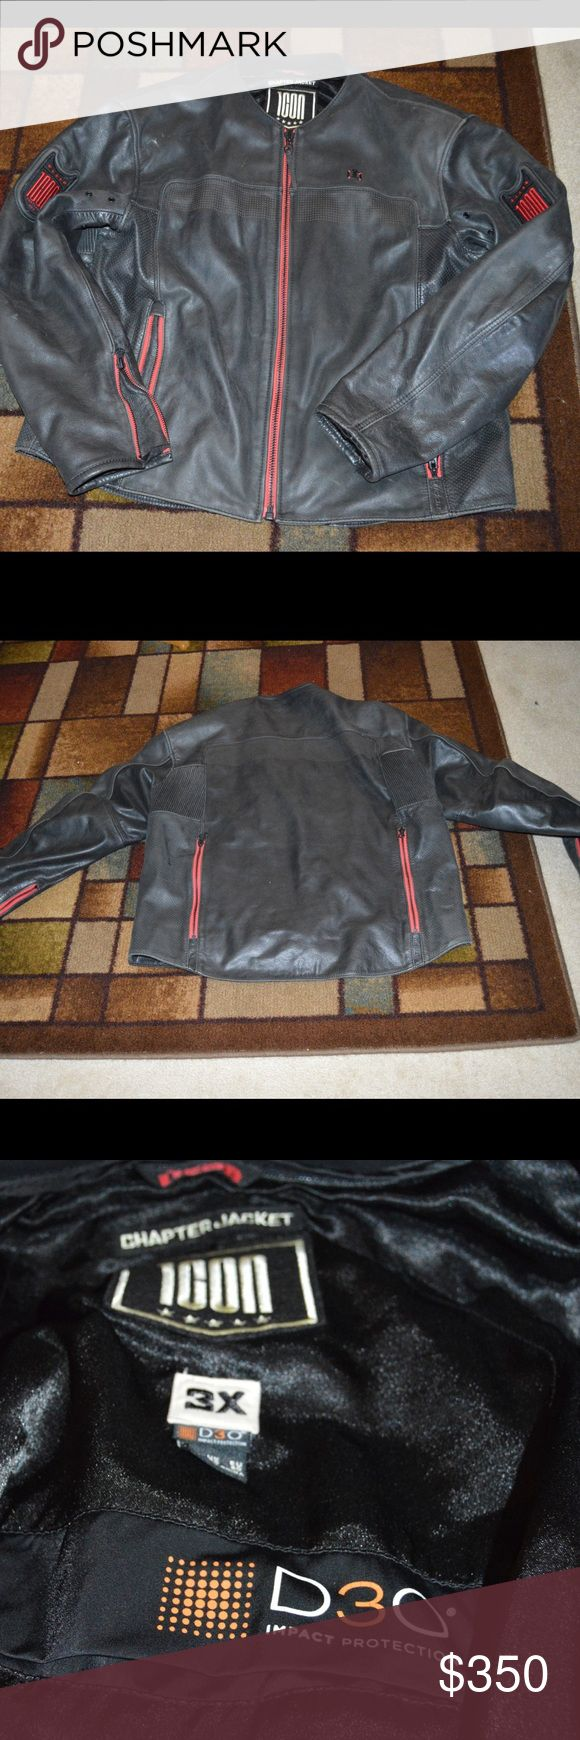 Men's ICON leather riding jacket ICON riding jacket, with D30 padding (arms and back) 6 pockets, 2 back vents in back. REALLY GOOD CONDITION! ICON Jackets & Coats